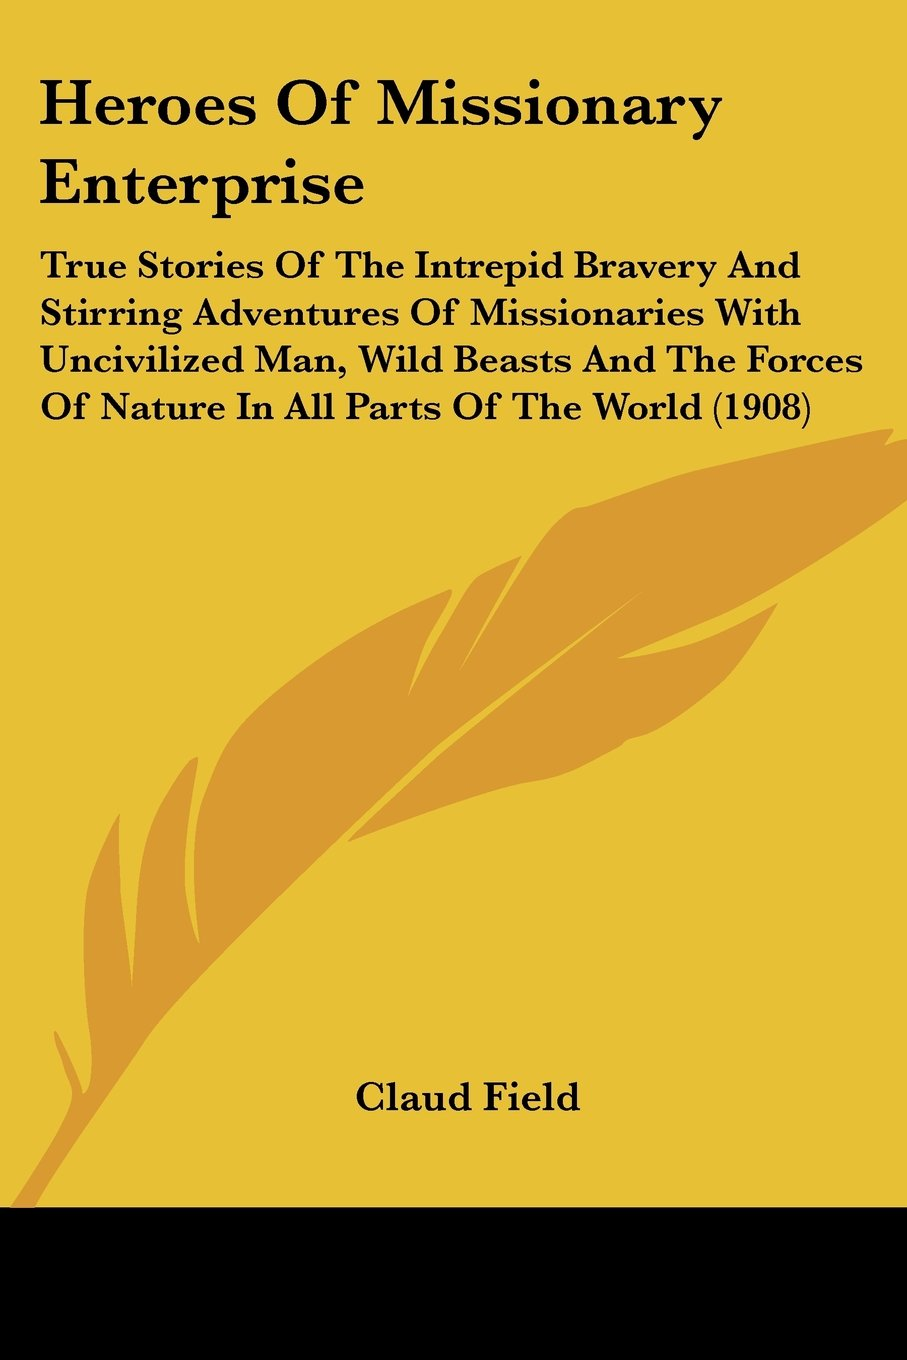 Read Online Heroes Of Missionary Enterprise: True Stories Of The Intrepid Bravery And Stirring Adventures Of Missionaries With Uncivilized Man, Wild Beasts And ... Of Nature In All Parts Of The World (1908) ebook